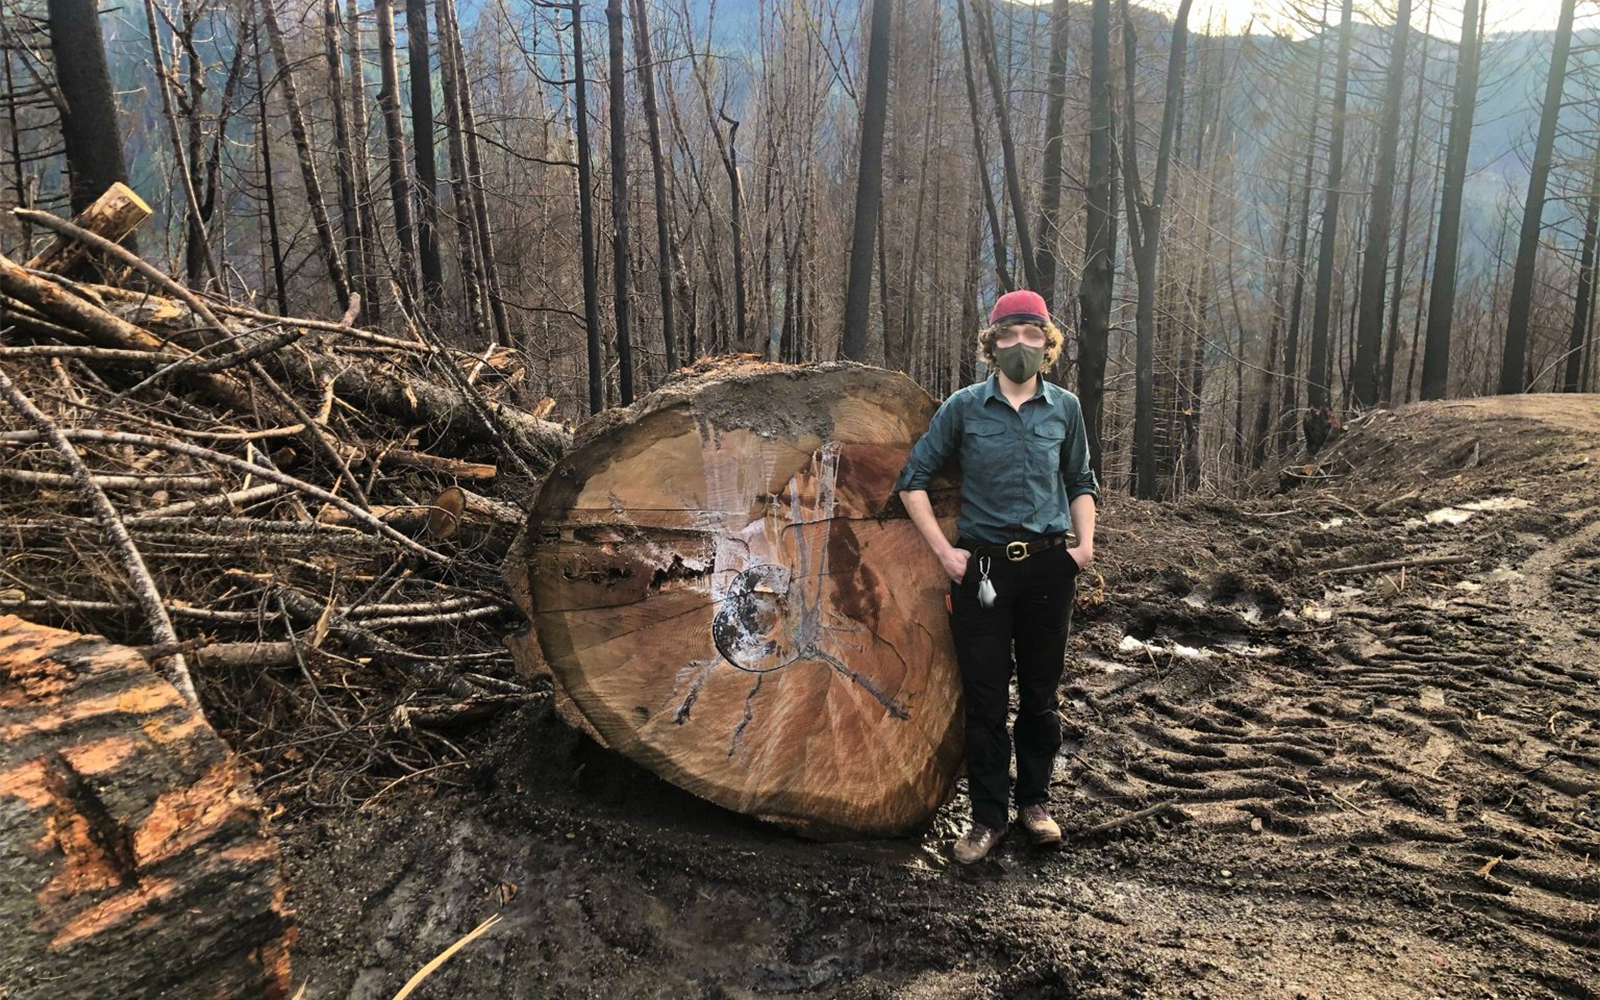 Salvage does not aid ecological recovery of forests